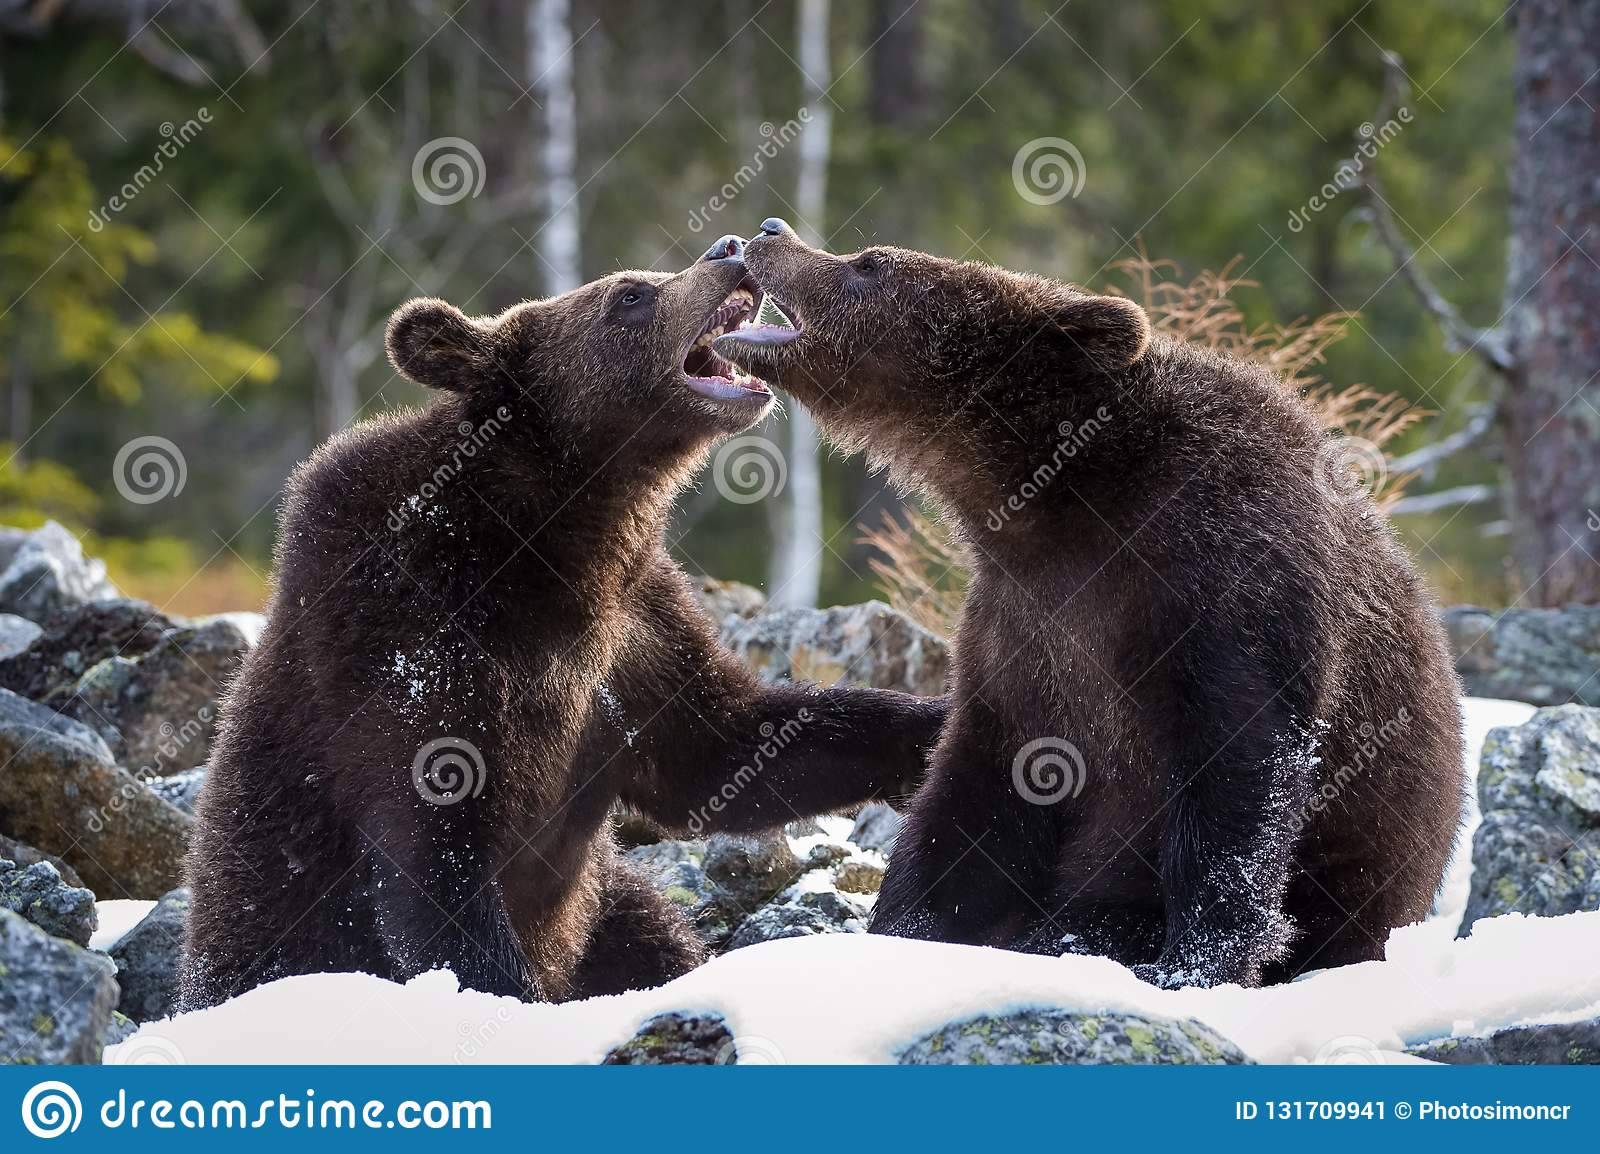 The young Broown Bears, Ursus arctos is looking what to do. Standing young bears are fighting or playing in the forest. In the